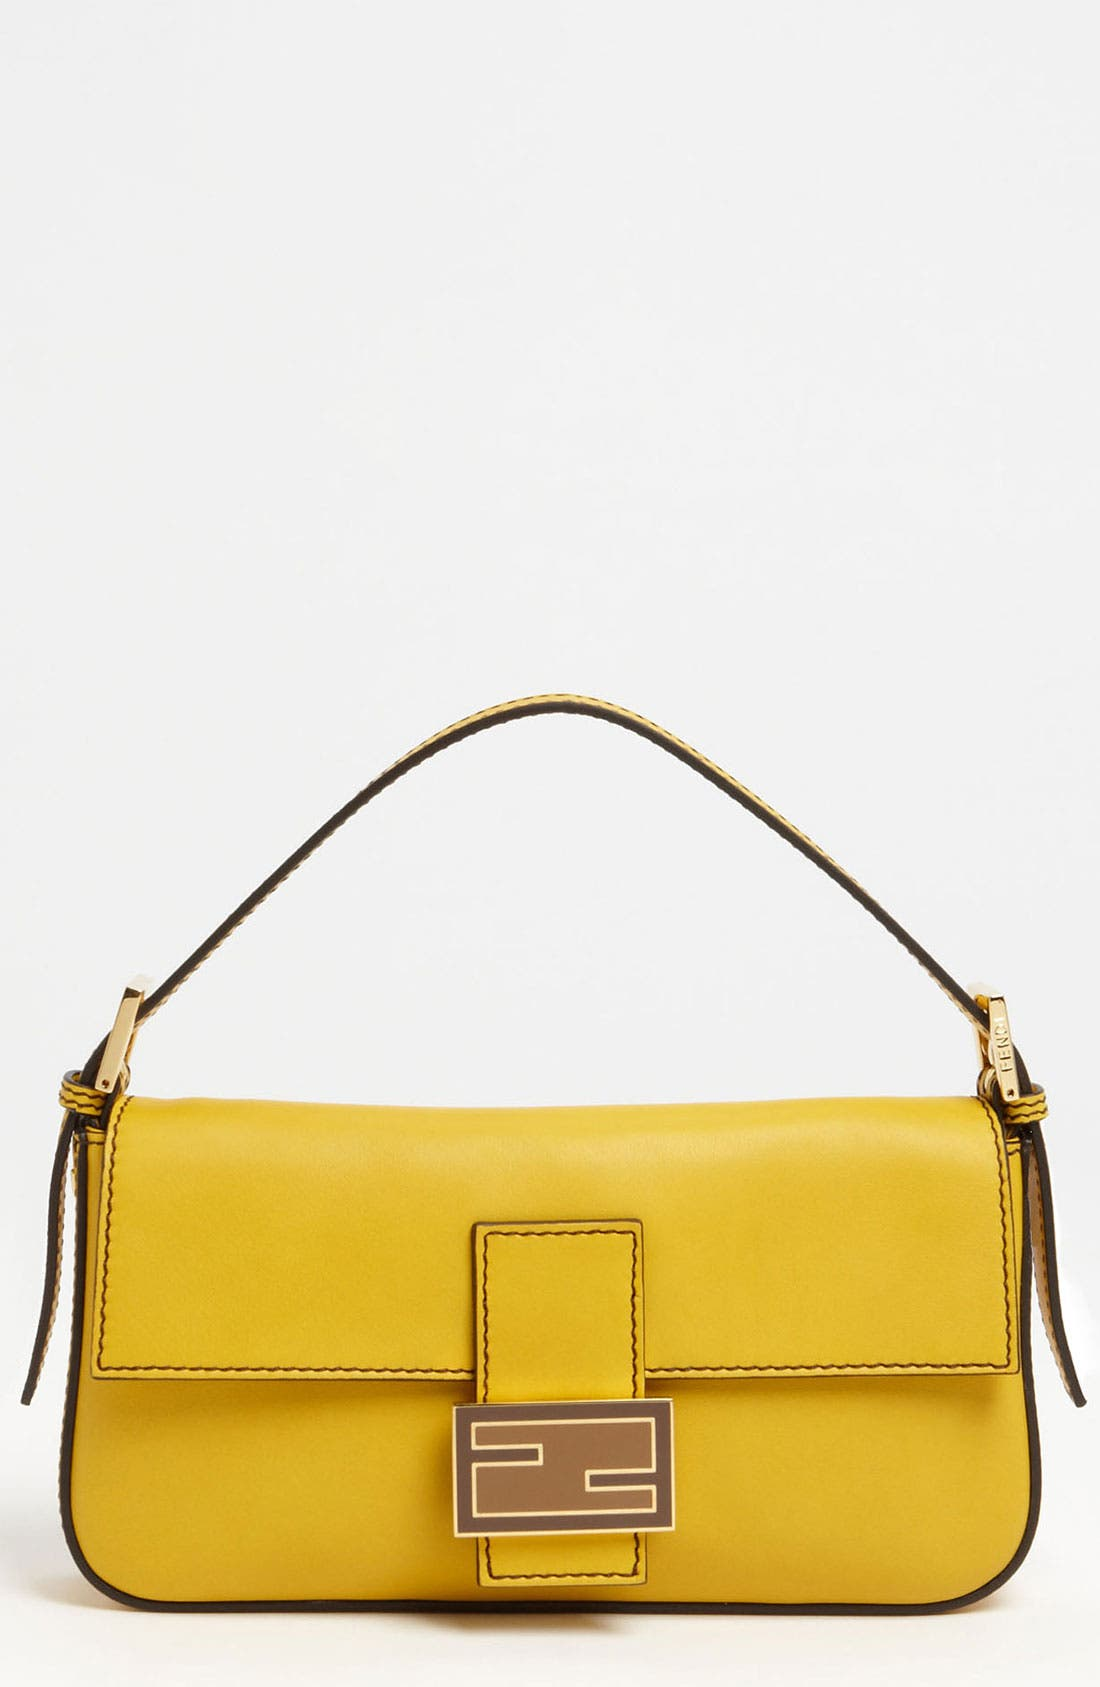 Main Image - Fendi Leather Baguette